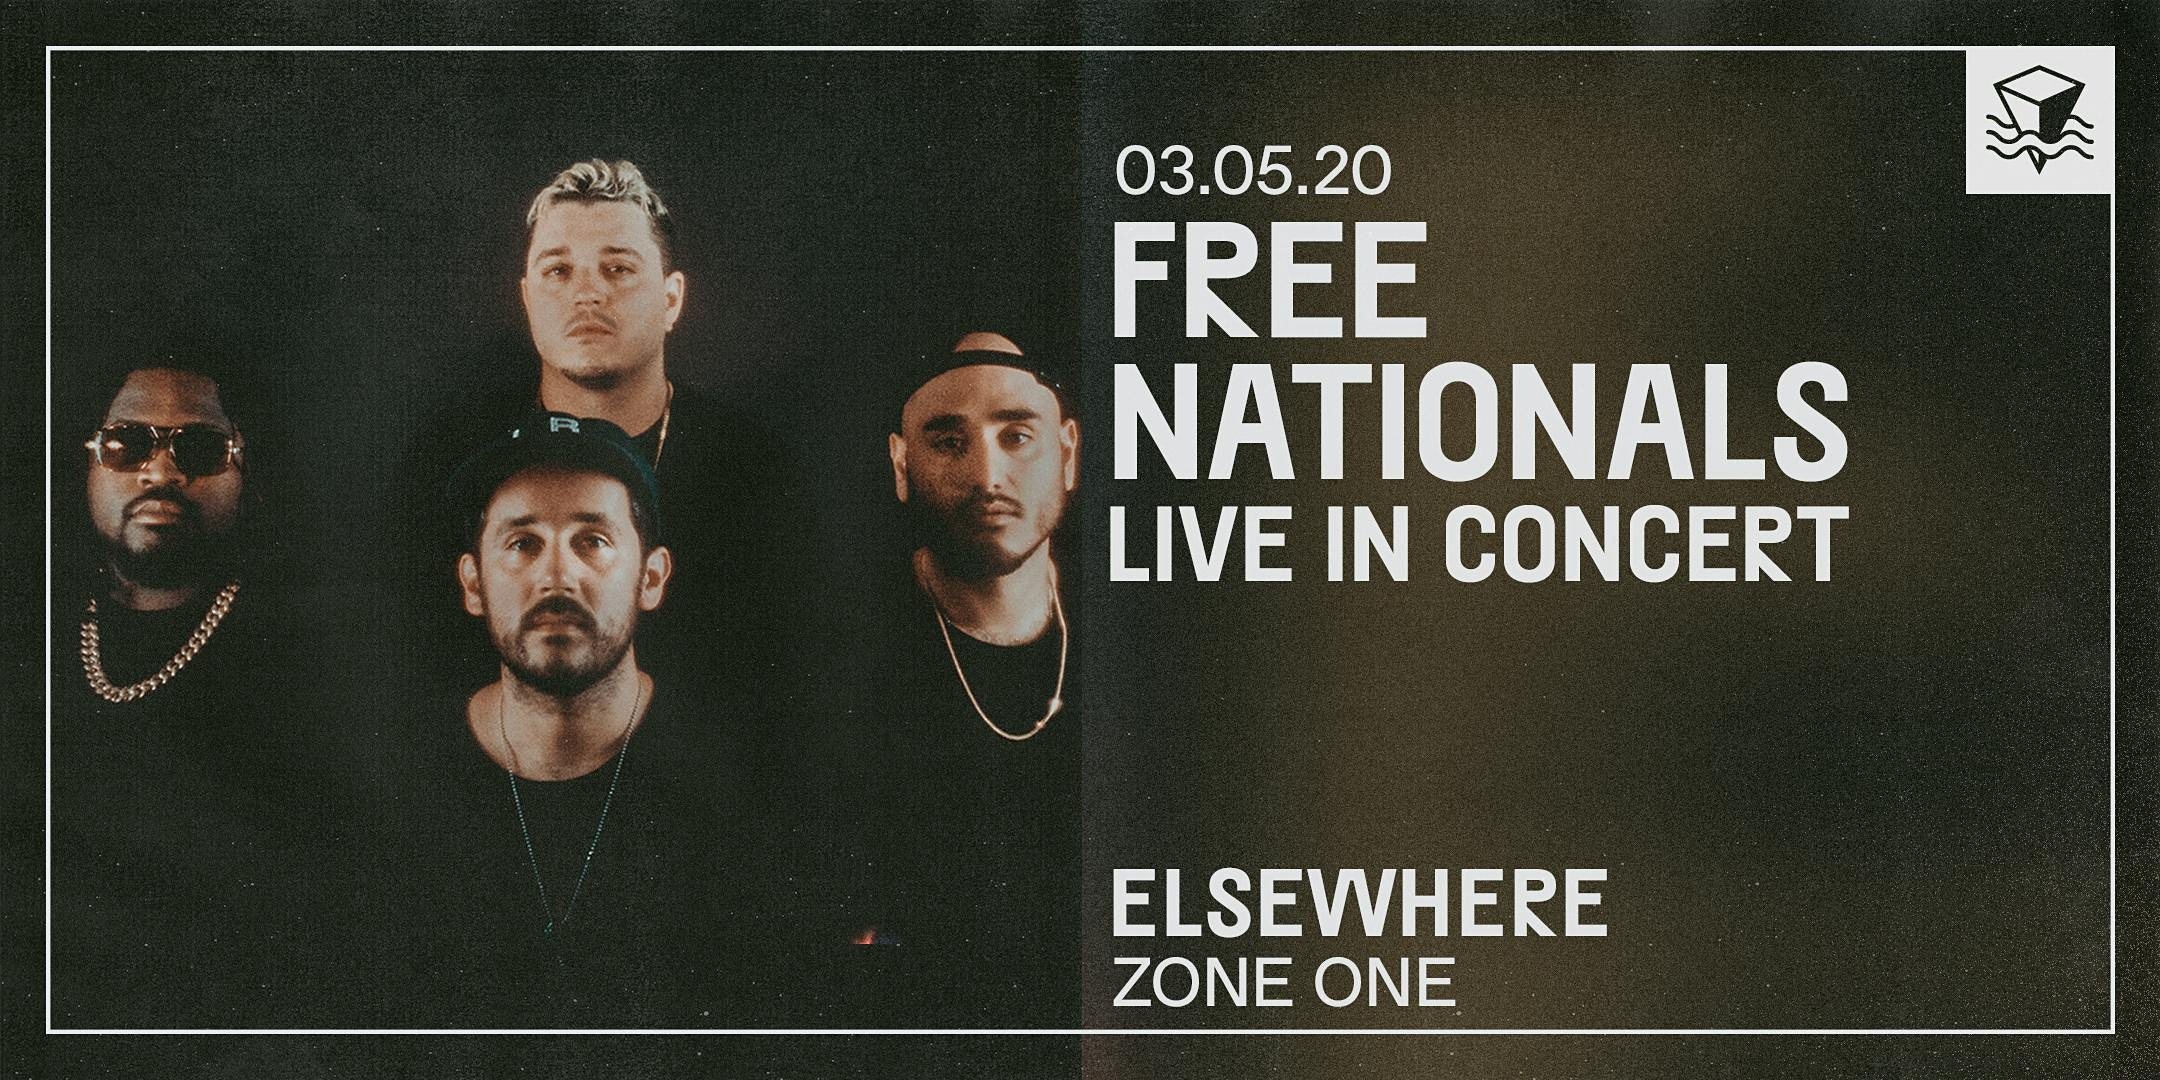 The Free Nationals: Live in Concert